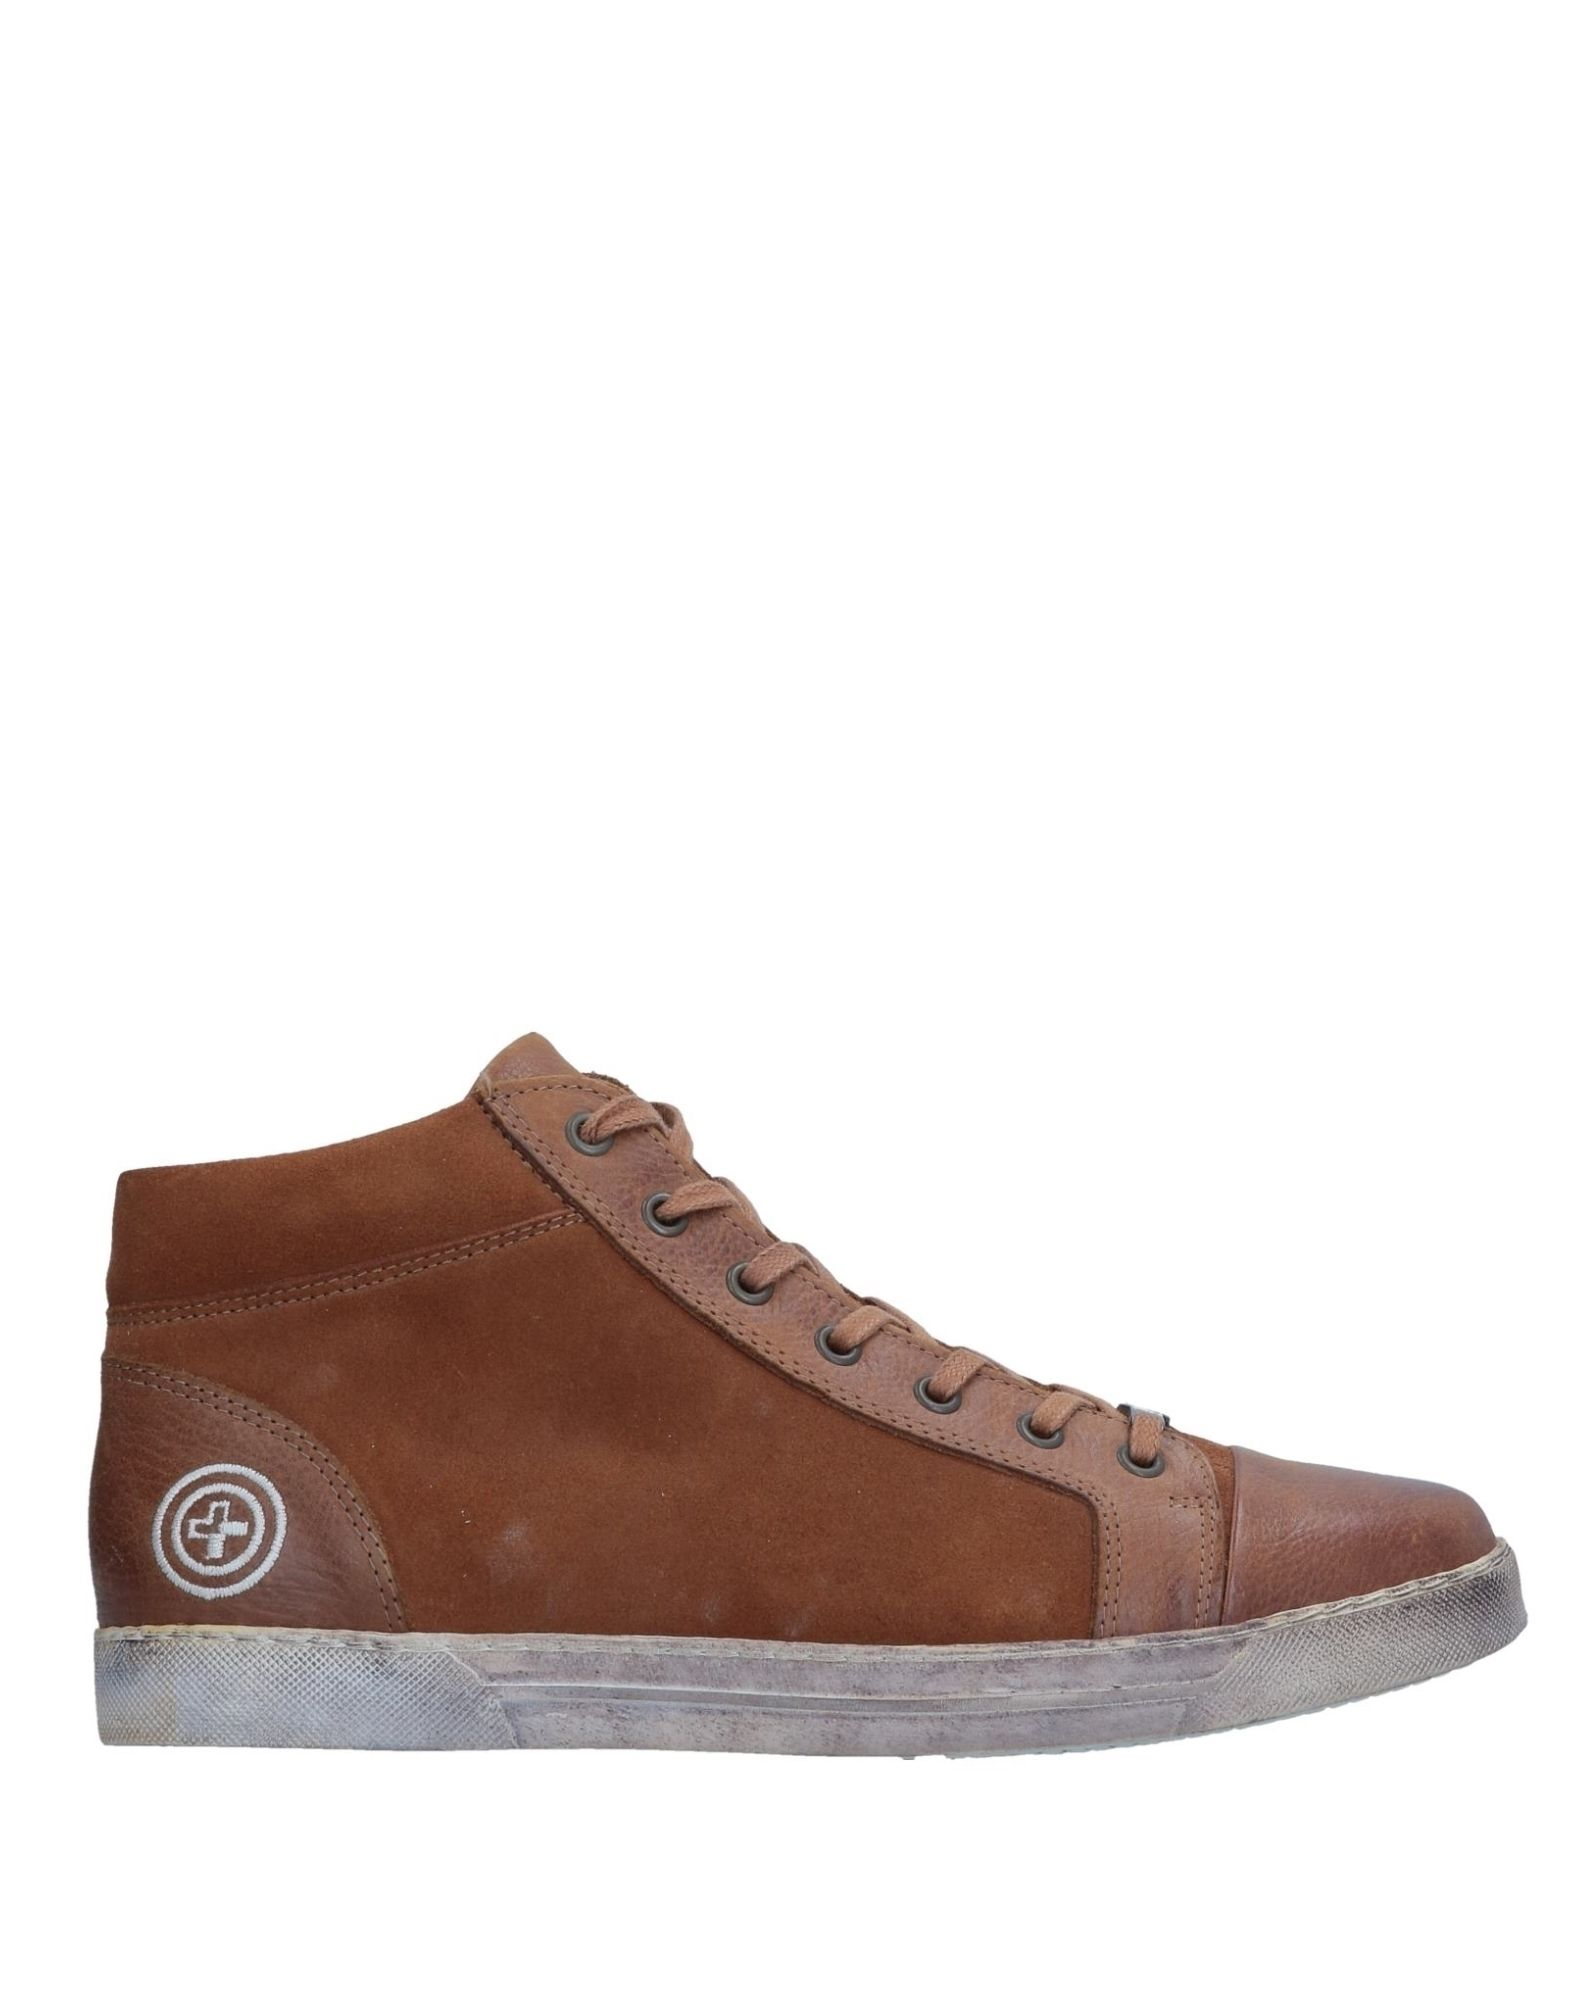 Sneakers Gino-B Homme - Sneakers Gino-B  Marron Dernières chaussures discount pour hommes et femmes